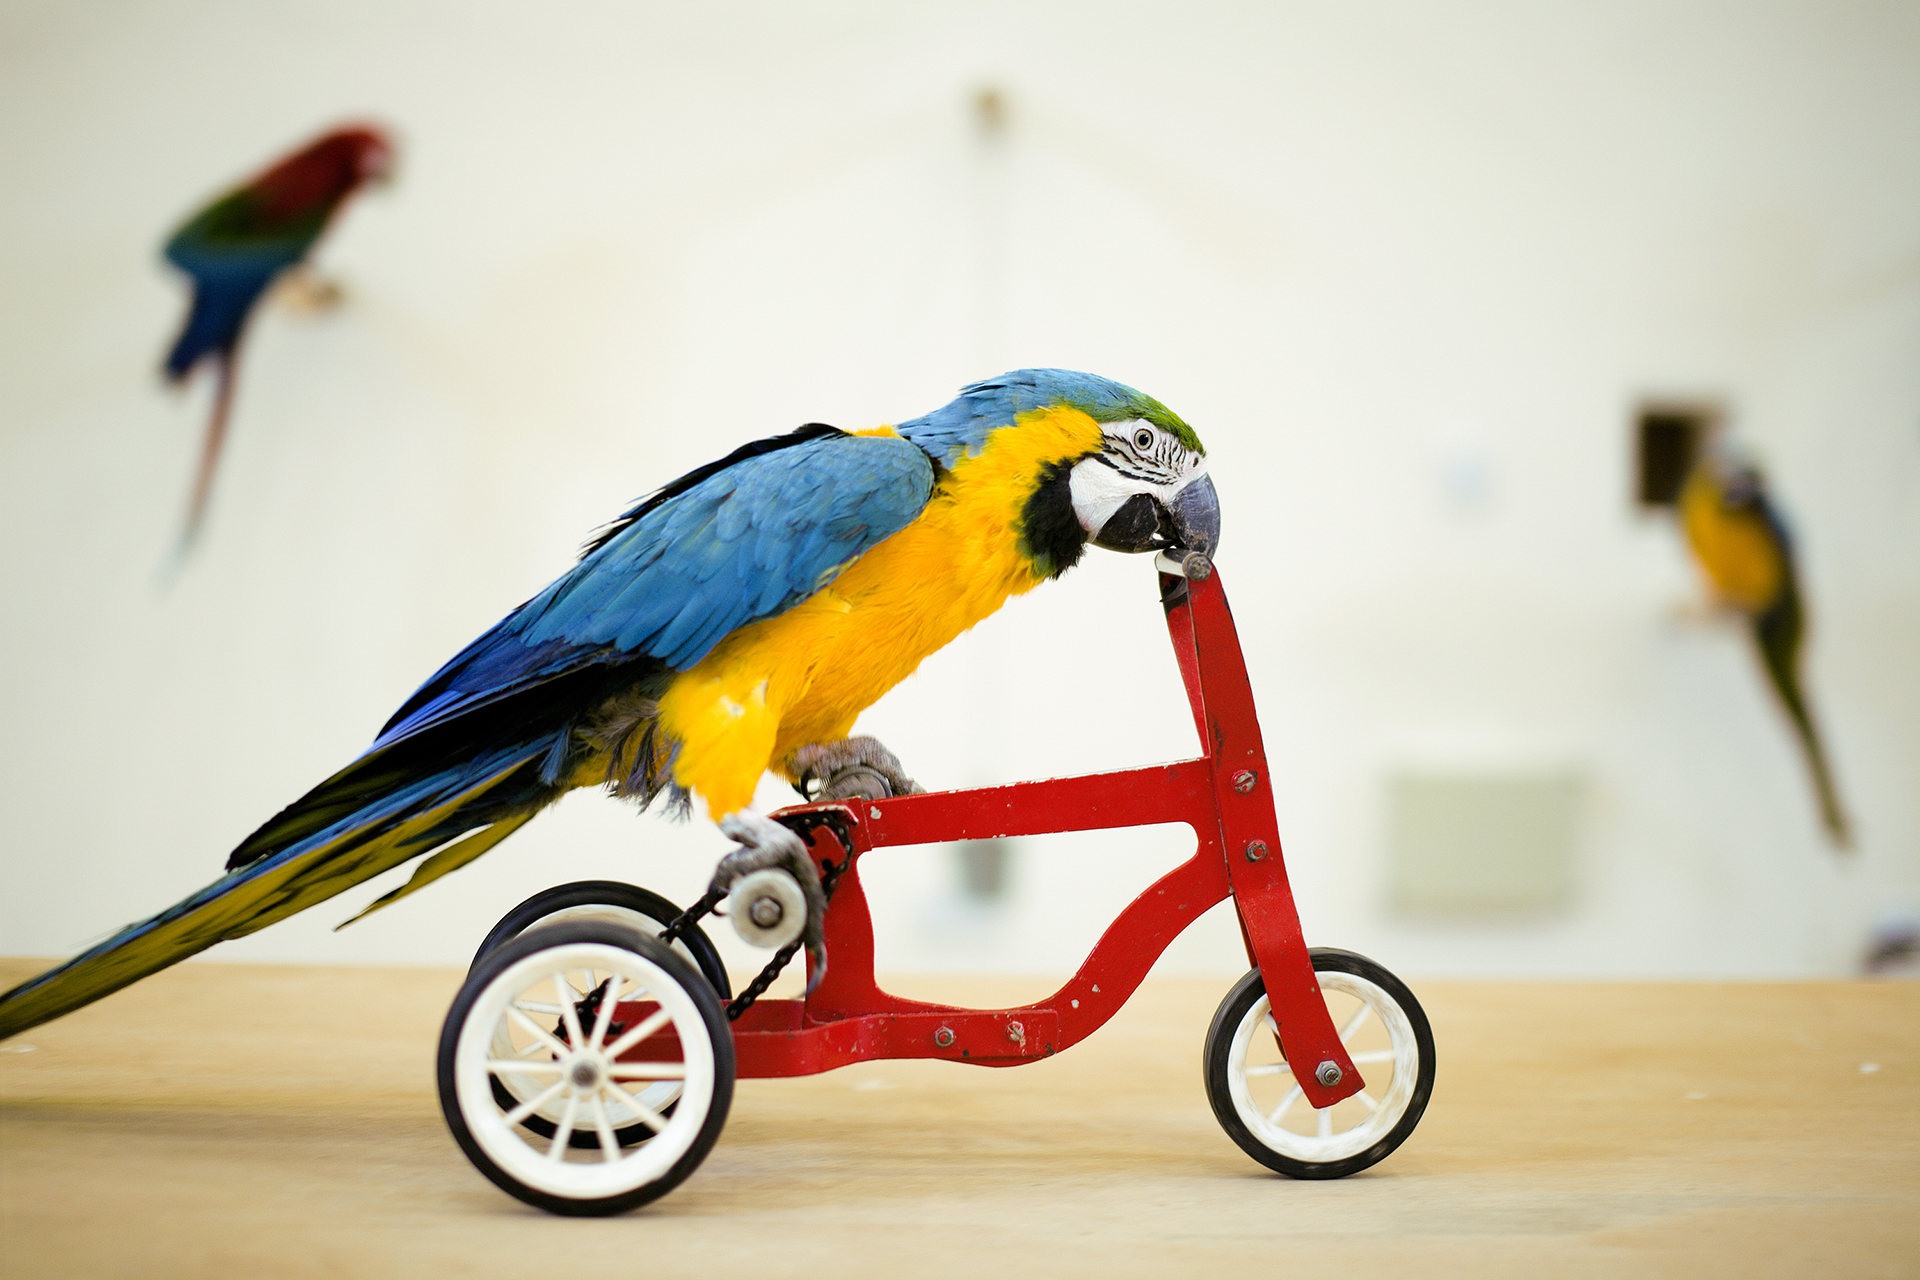 Colorful parrot riding on red bicycle